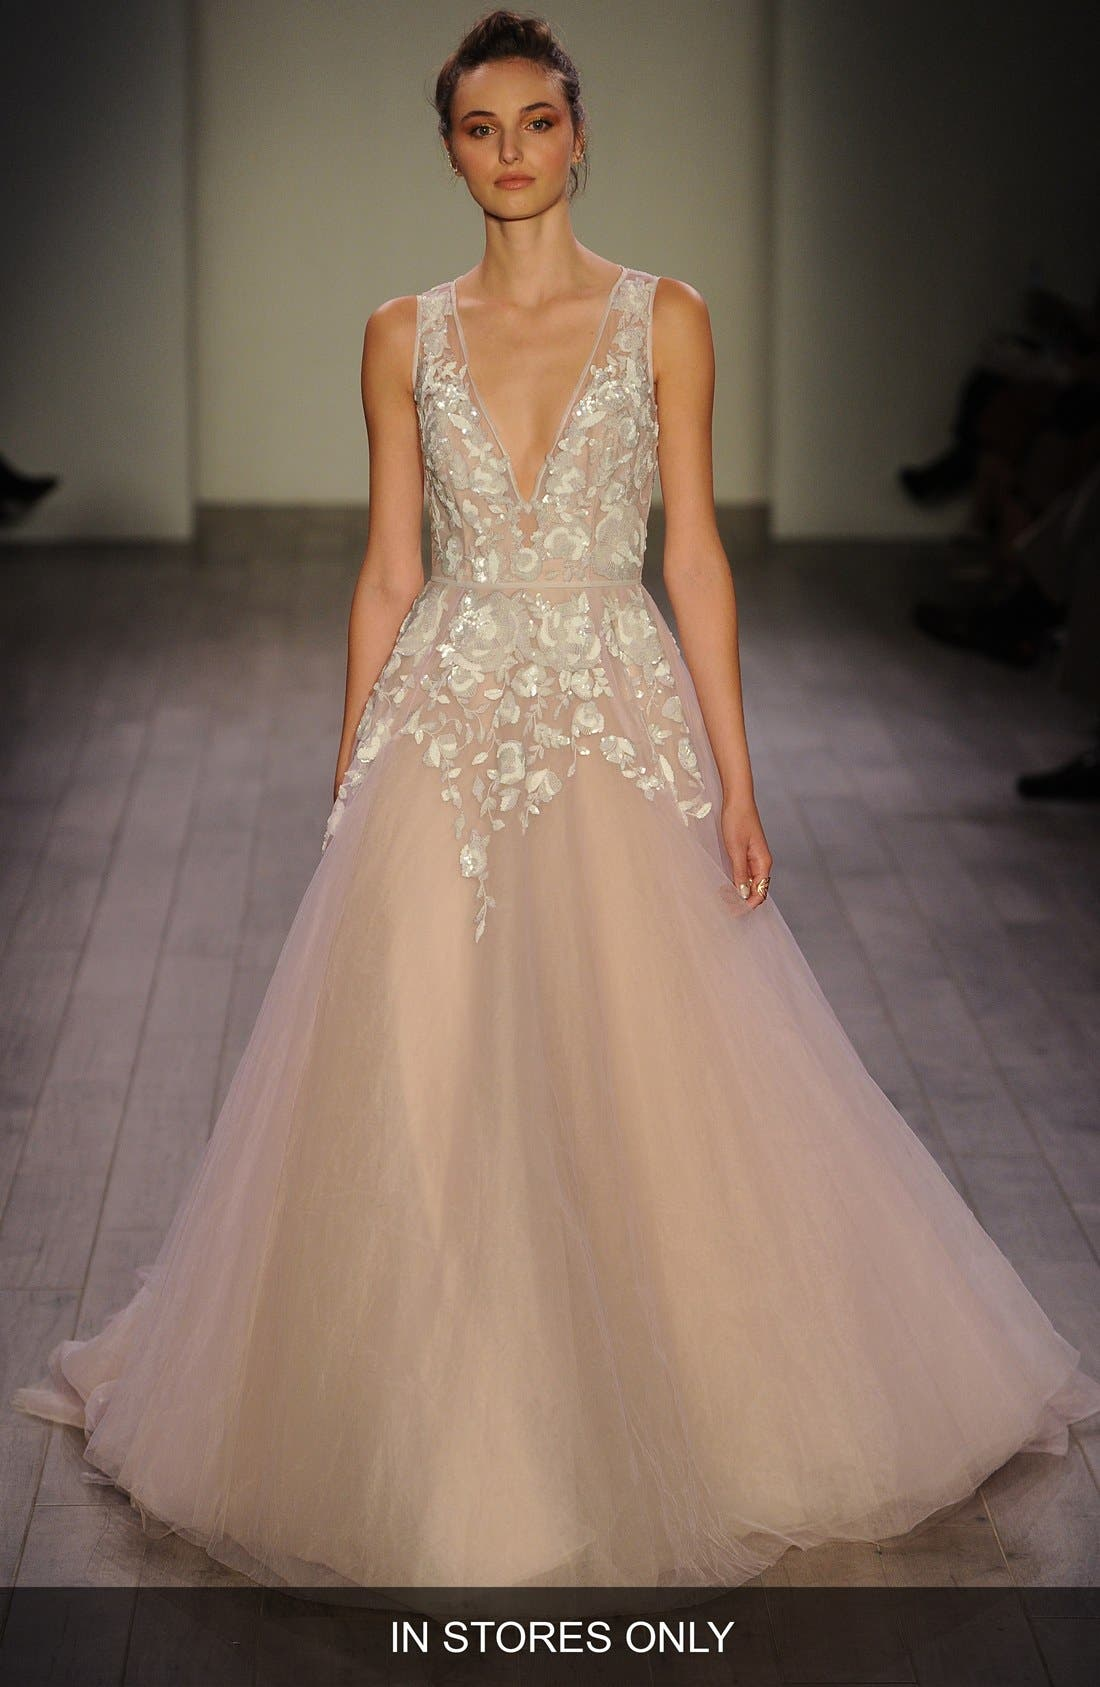 HAYLEY PAIGE 'Leah' Floral Sequin V-Neck Tulle Ballgown